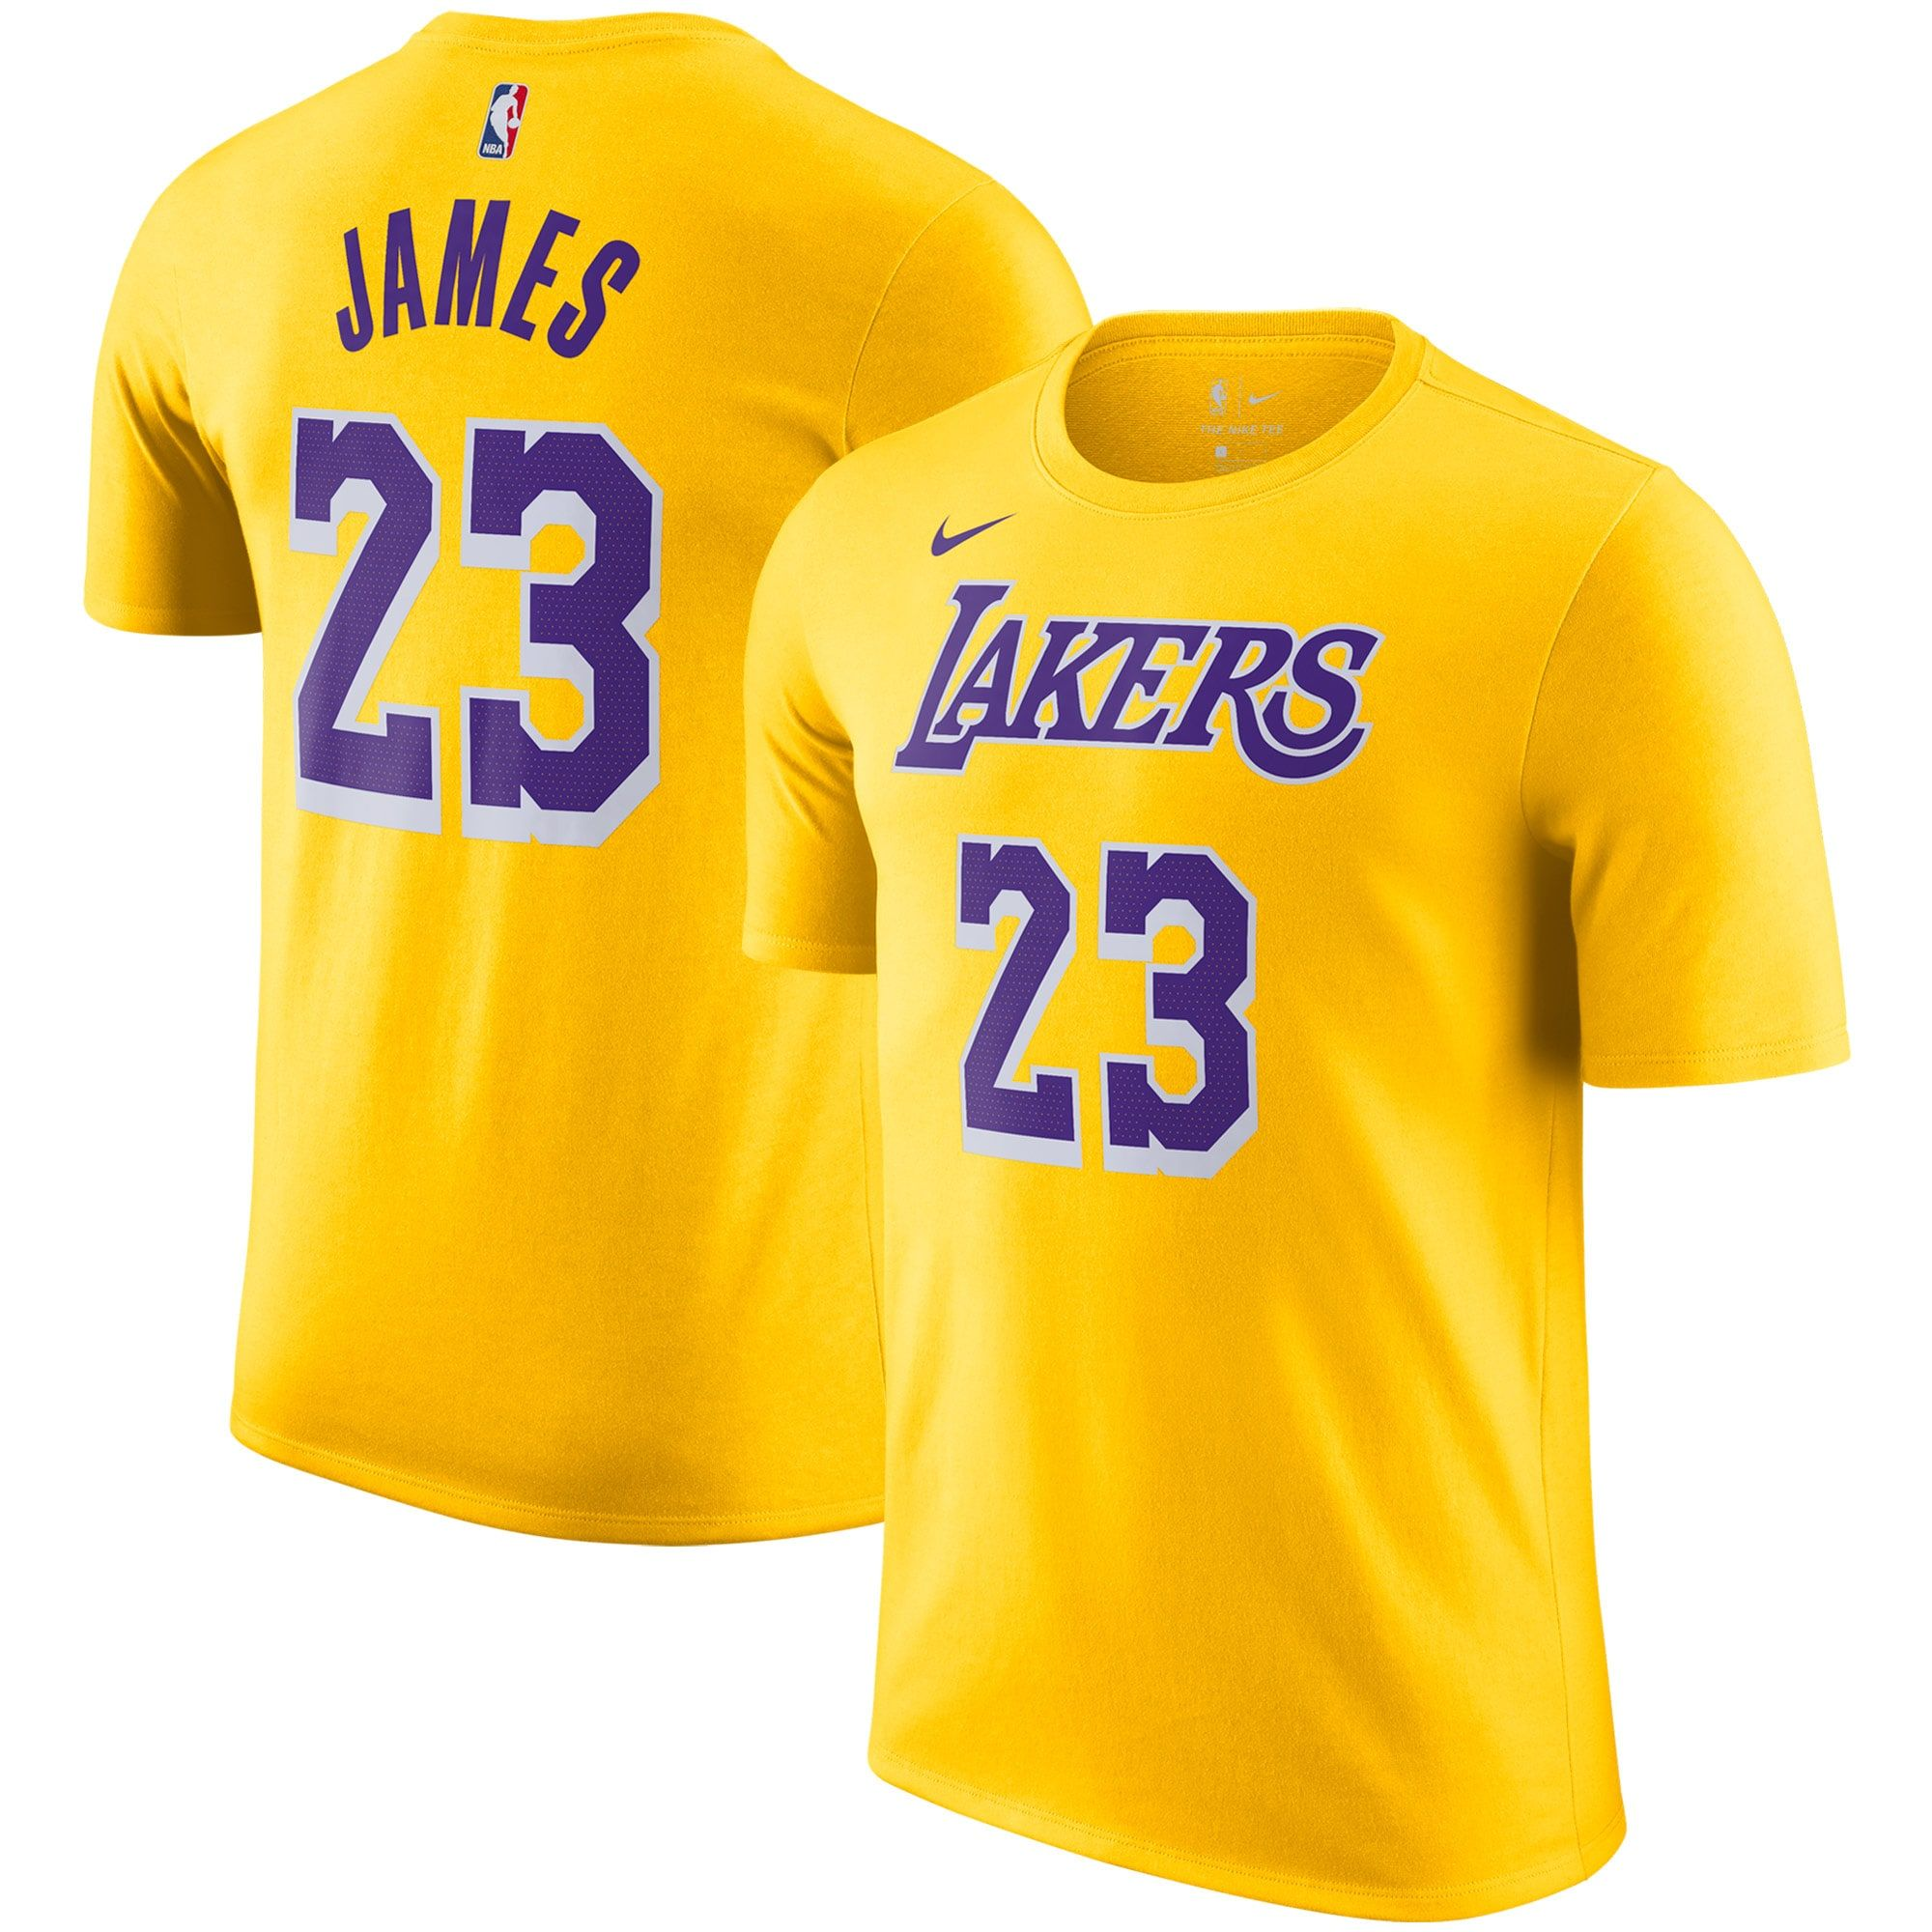 You Are A Die Hard Los Angeles Lakers Fan And Lebron James Tops Your List Of Favorite Players Make That Easily Known To Everyone You Come